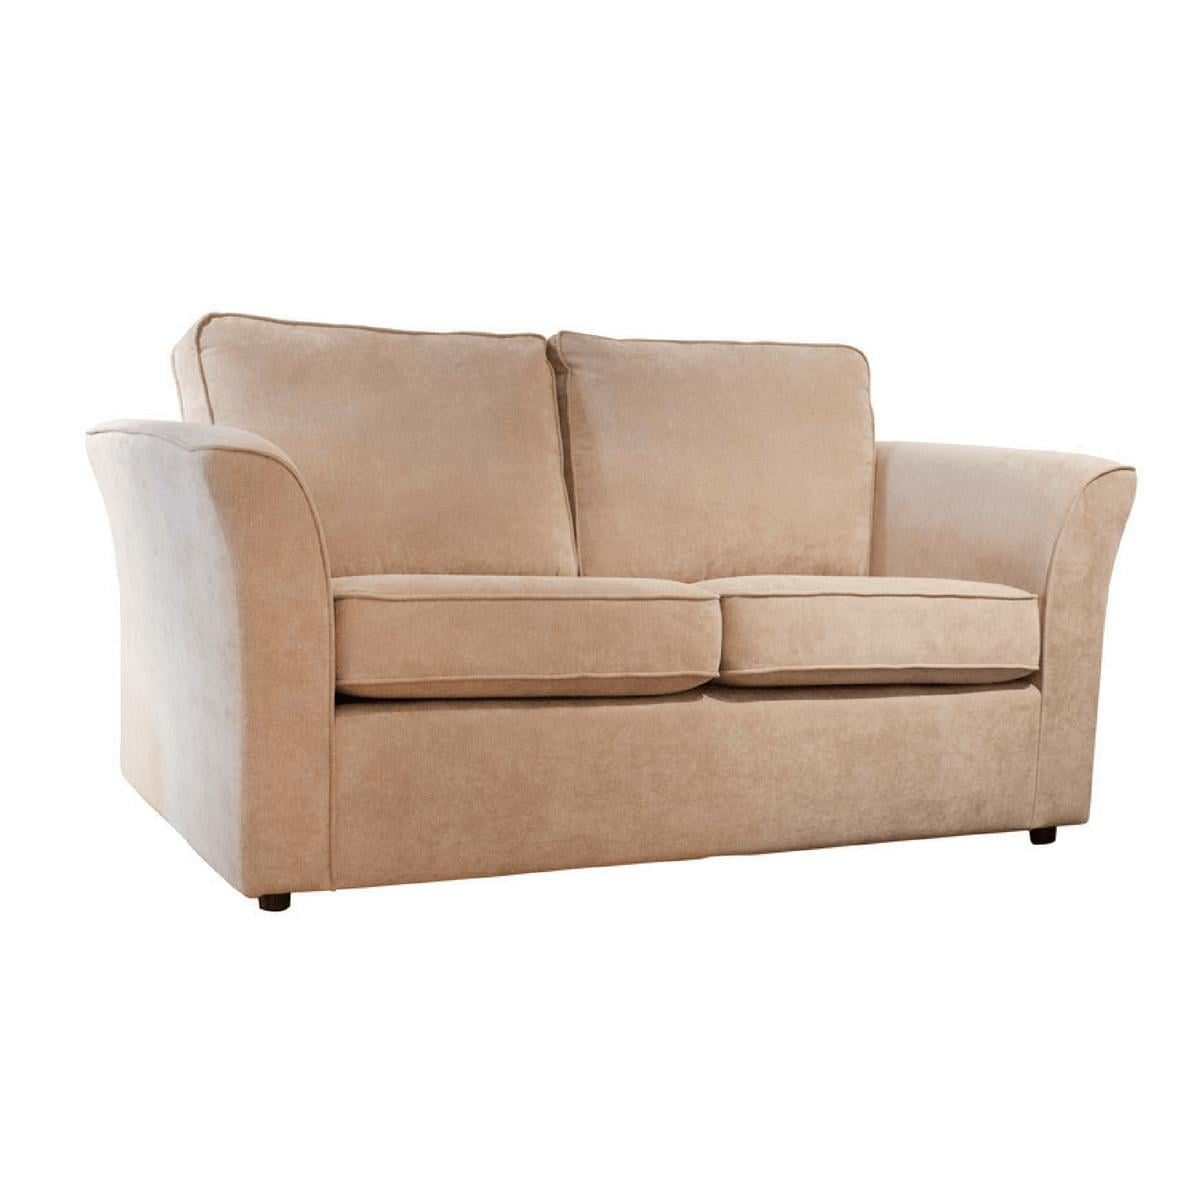 Maya 2 Seater Sofa Bed